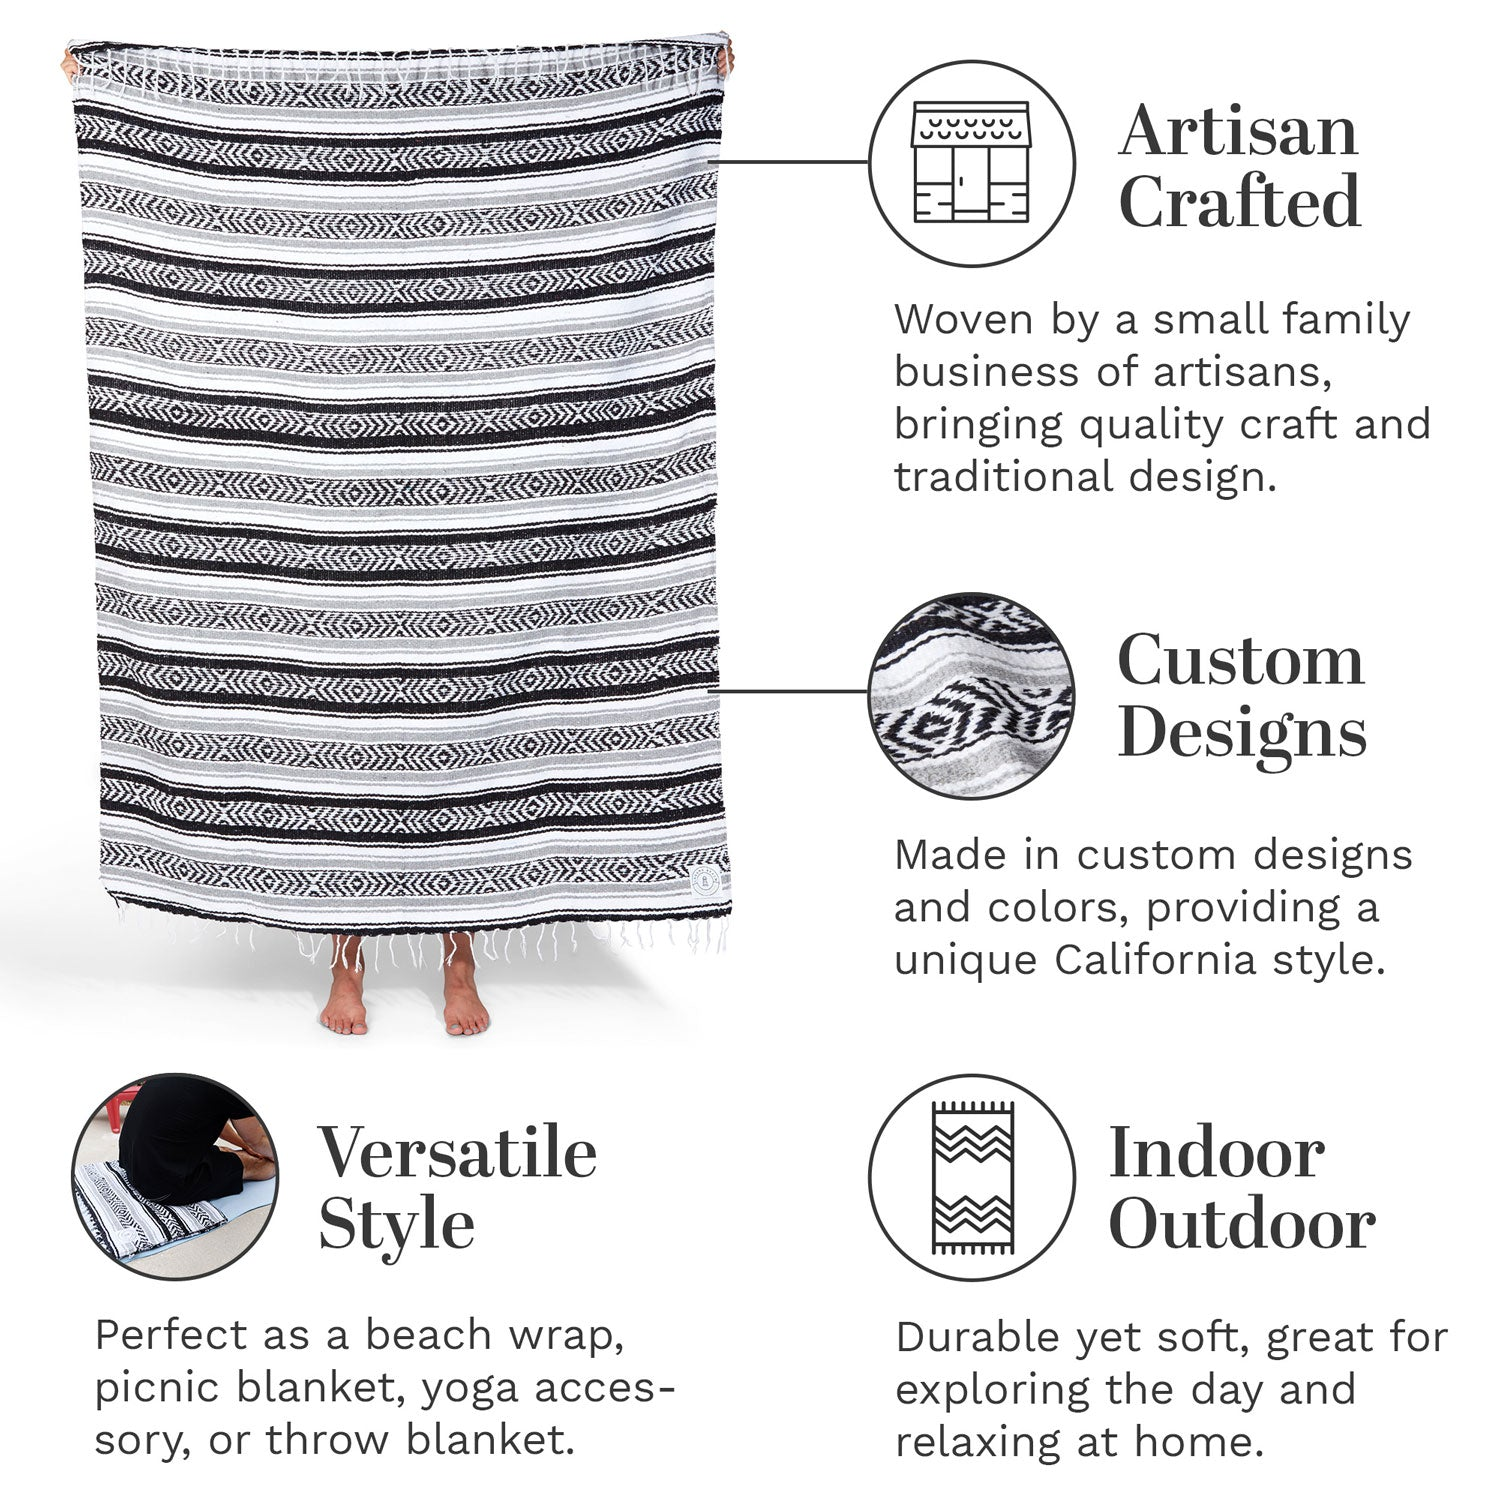 Infographic of our black, gray, and white Mexican blanket highlighting its versatile style and artisan craftsmanship.